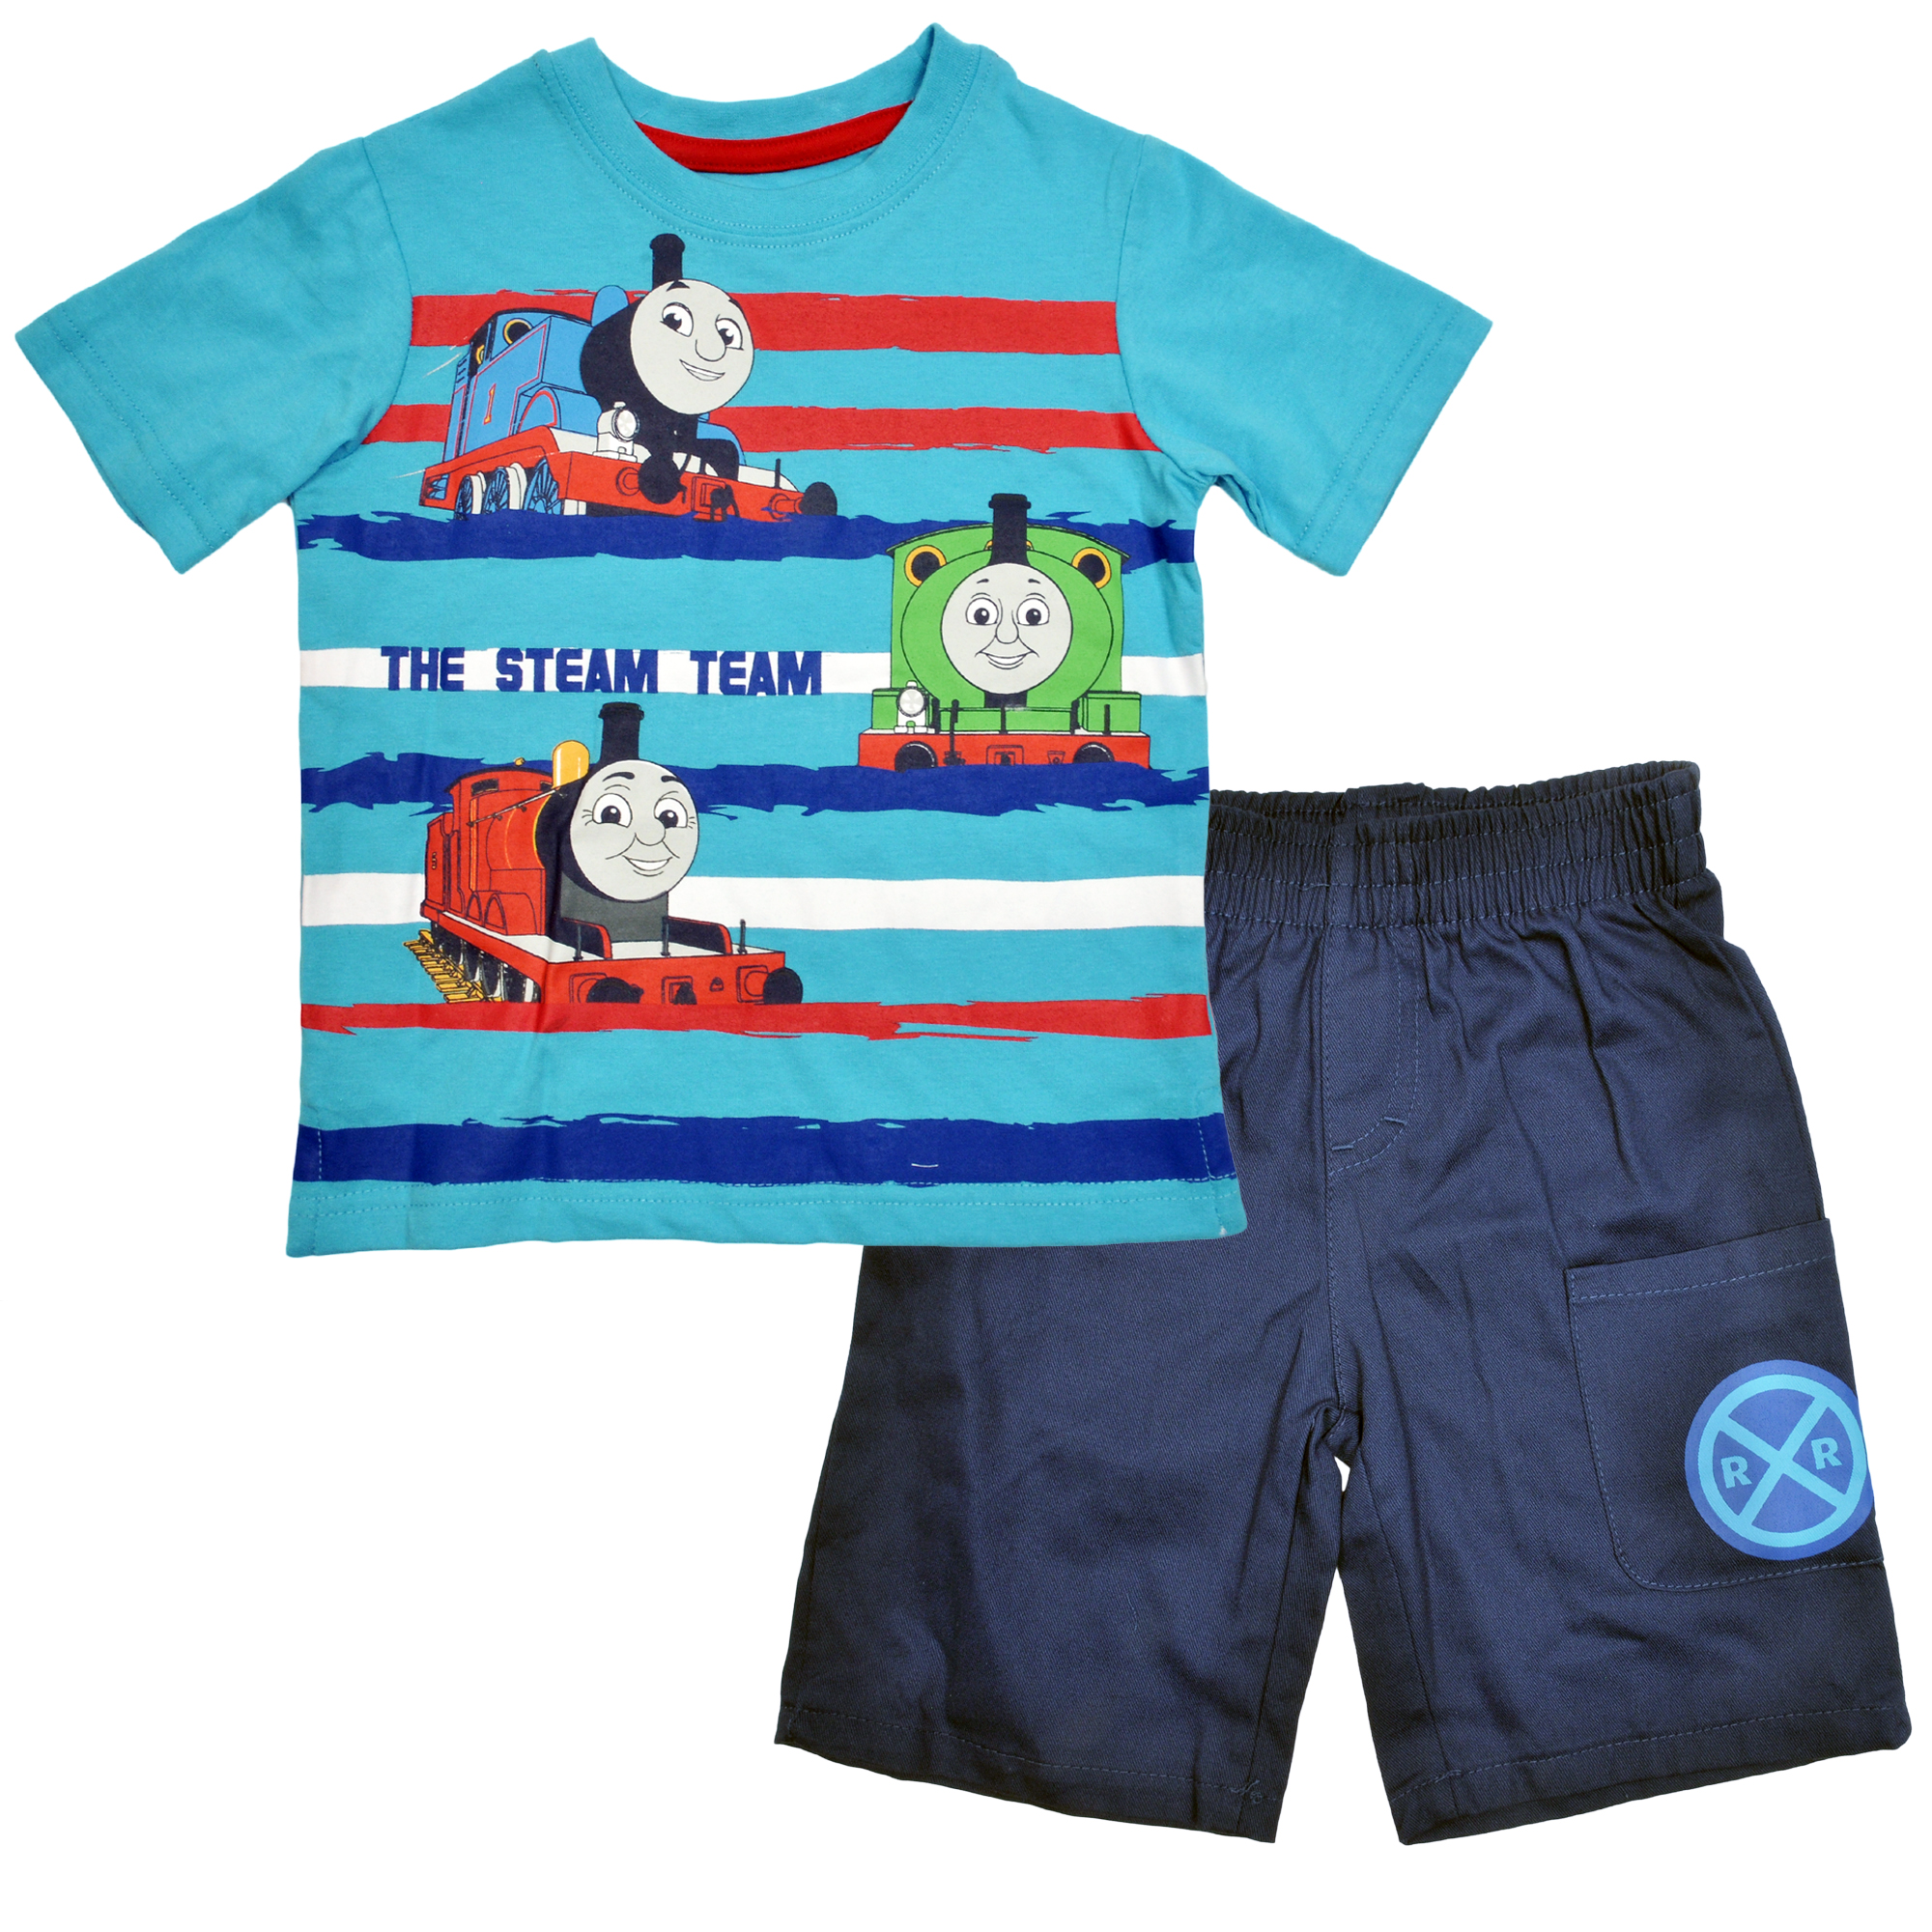 Toddler Boys Thomas The Train & Friends 2-Piece Shorts Set